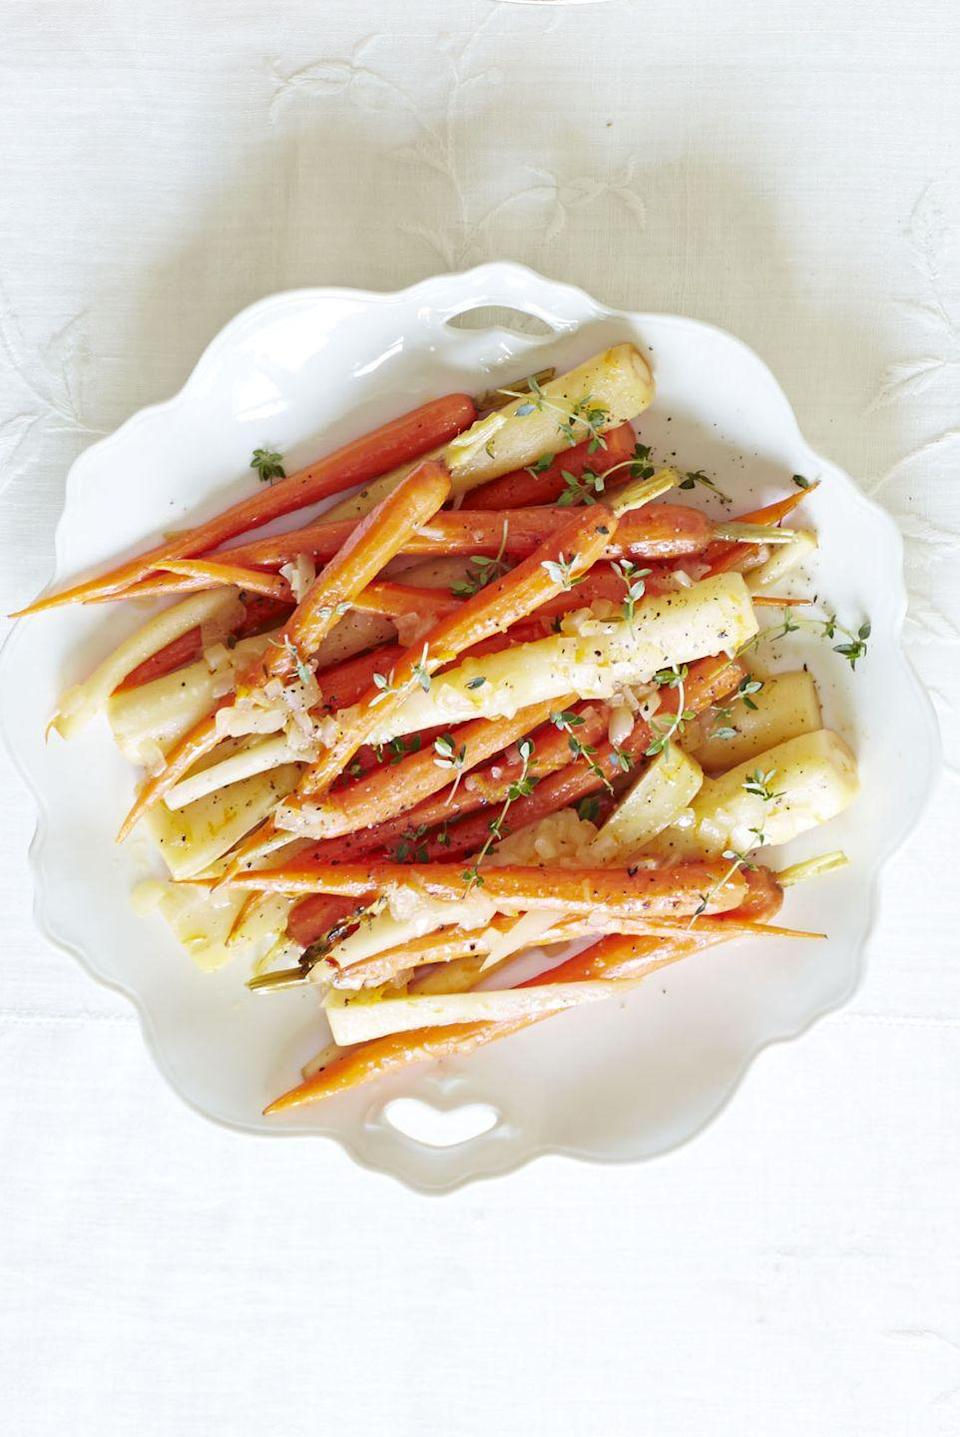 """<p>These OJ-braised veggies get a little flavor kick from crushed red pepper flakes — double the amount for even more oomph. No shallots? Half a small onion also works.</p><p><a href=""""https://www.goodhousekeeping.com/food-recipes/a14496/orange-braised-carrots-parsnips-recipe-ghk1113/"""" rel=""""nofollow noopener"""" target=""""_blank"""" data-ylk=""""slk:Get the recipe for Orange-Braised Carrots and Parsnips »"""" class=""""link rapid-noclick-resp""""><em>Get the recipe for Orange-Braised Carrots and Parsnips »</em></a></p>"""